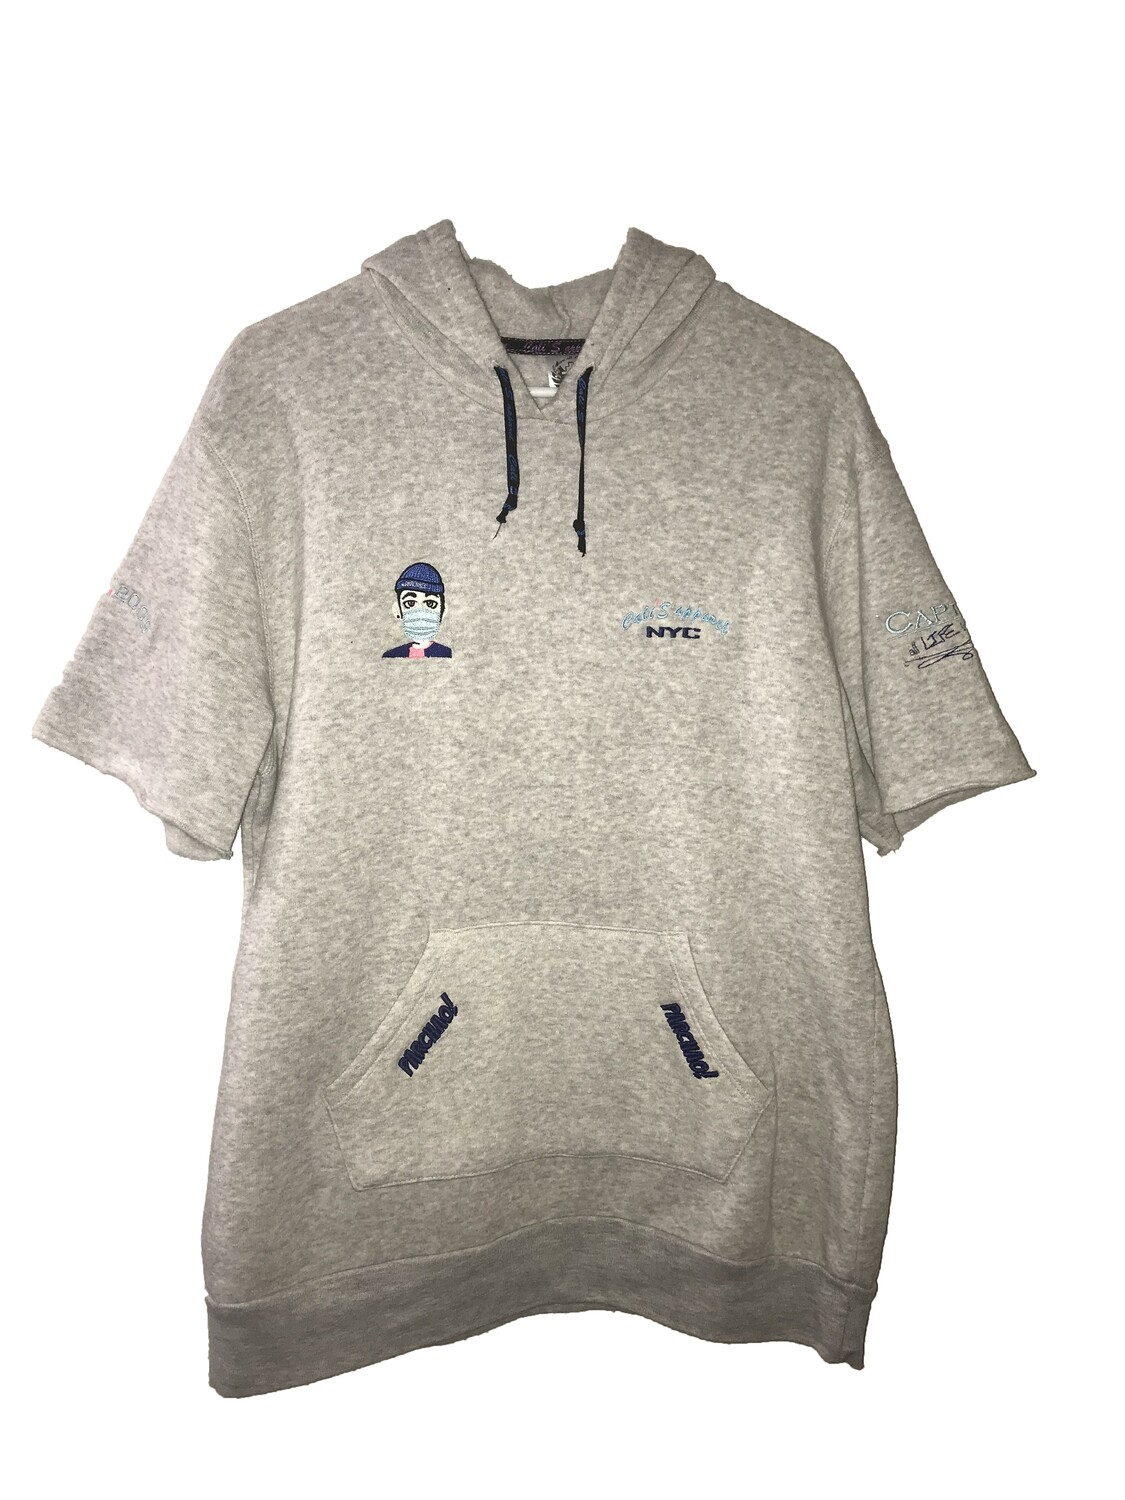 Cali's apparel NYC Heather Grey S&F x Kino Music Parchao Short Sleeve Pullover Hoodie